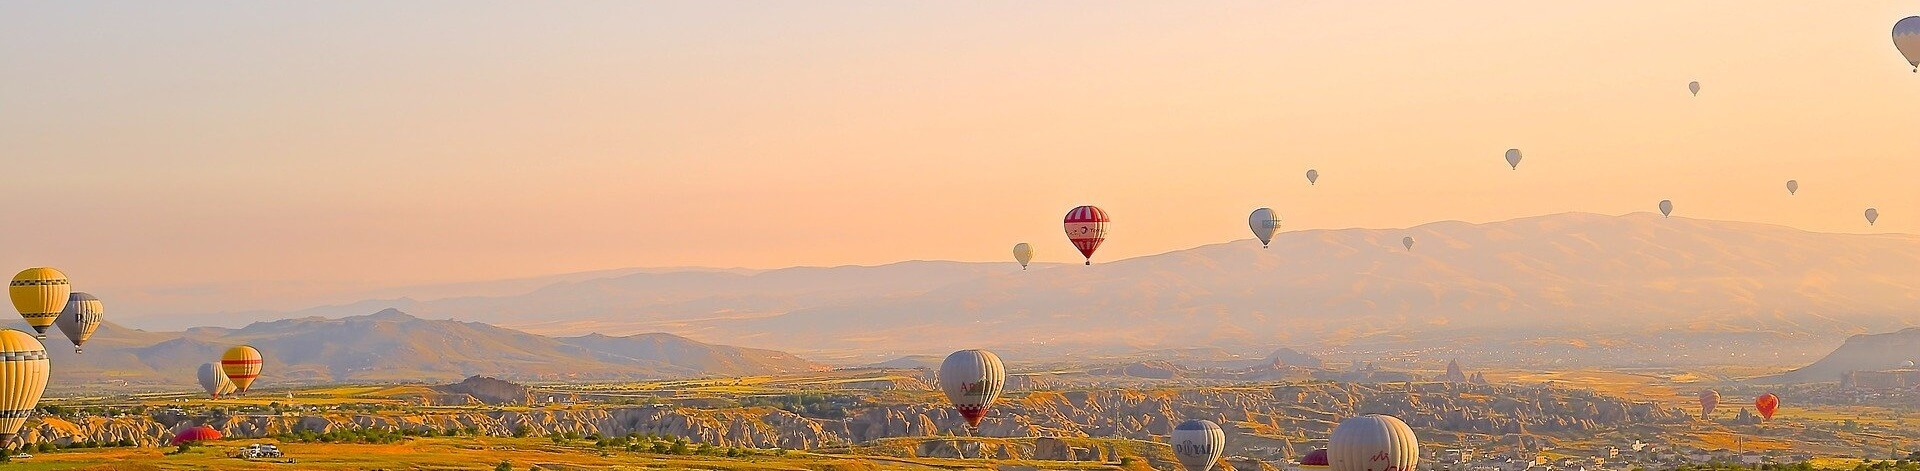 turkey citizenship by investment can be the gate to experiencing hot air ballooning over Cappadocia